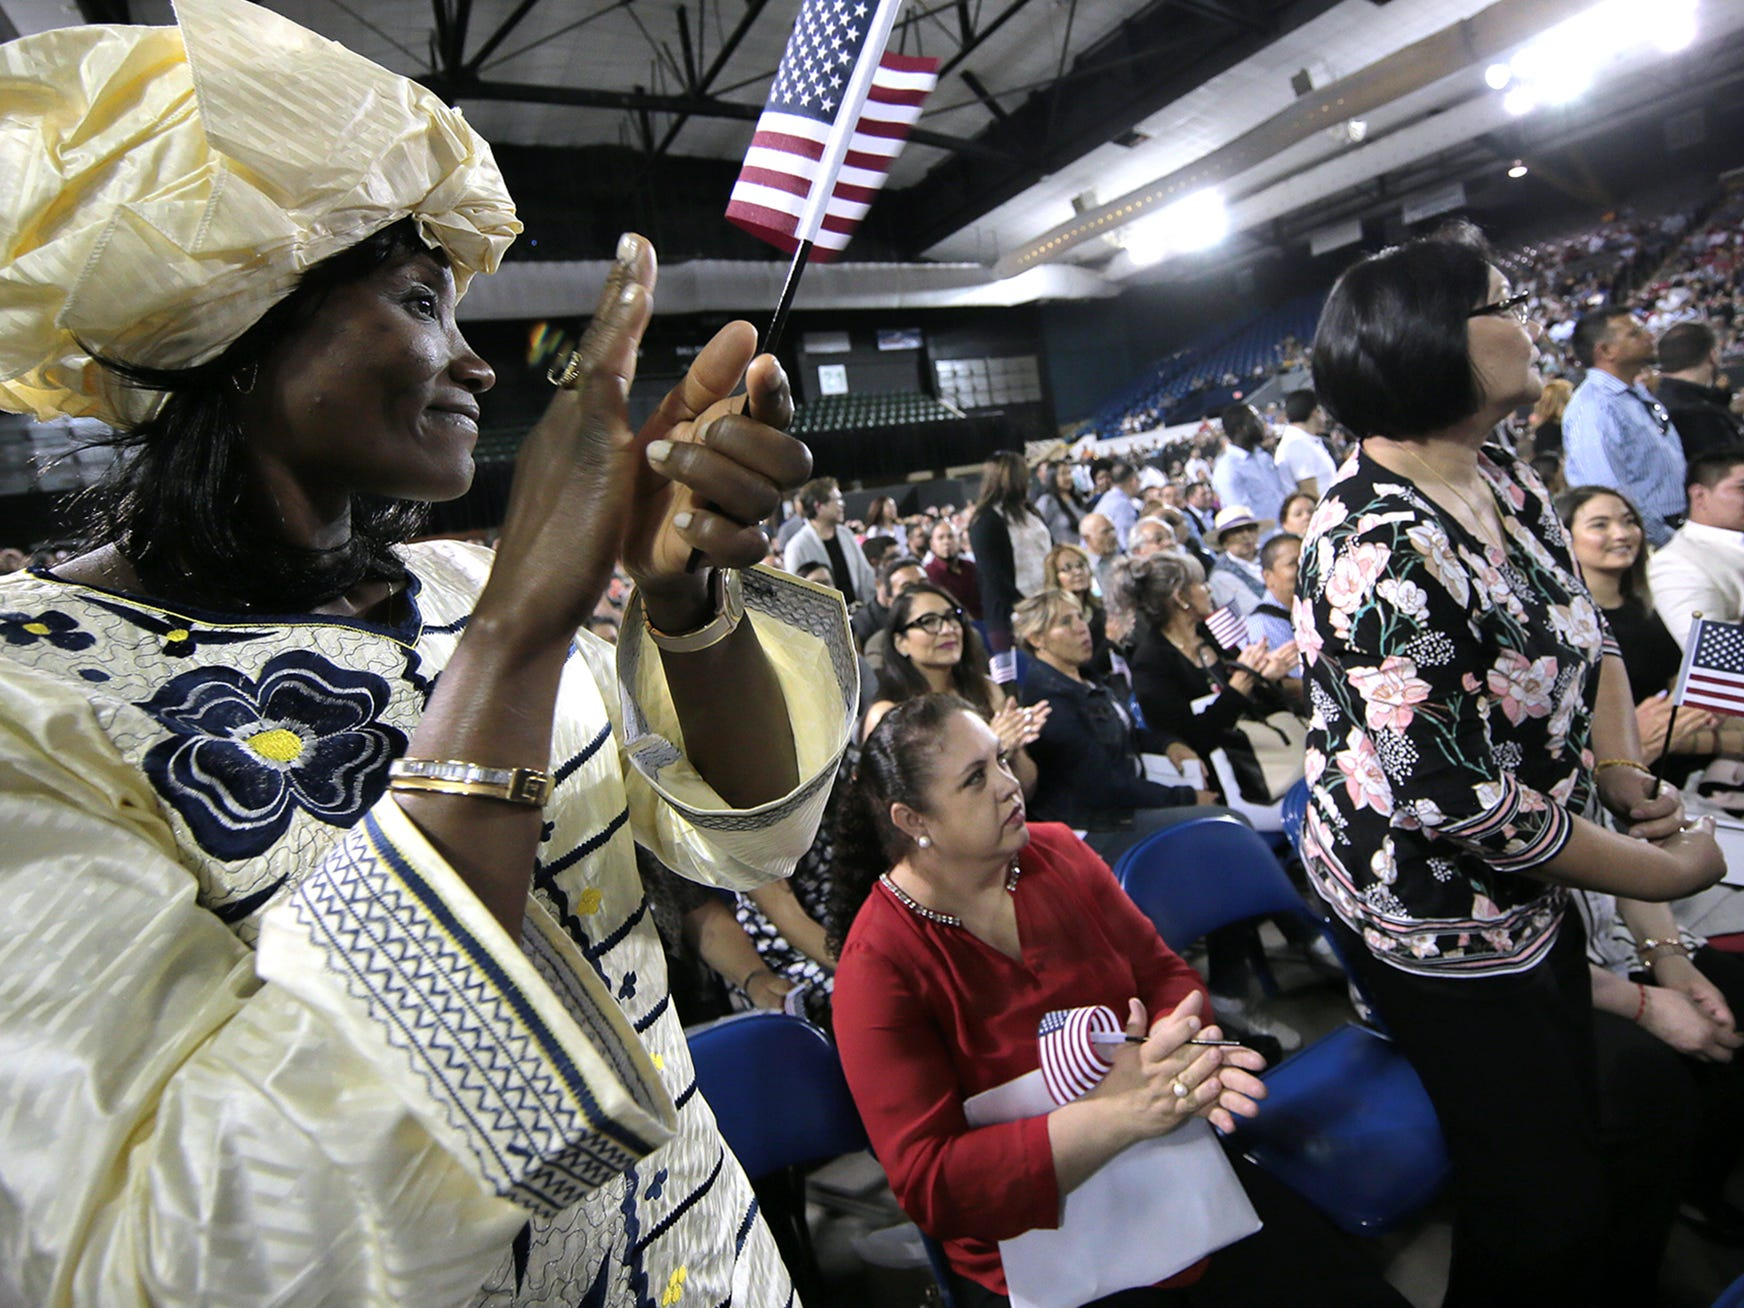 Leonie Tegnoche of Cameroon claps as her country was announced at a citizenship ceremony for 740 new citizens Thursday at the El Paso County Coliseum.